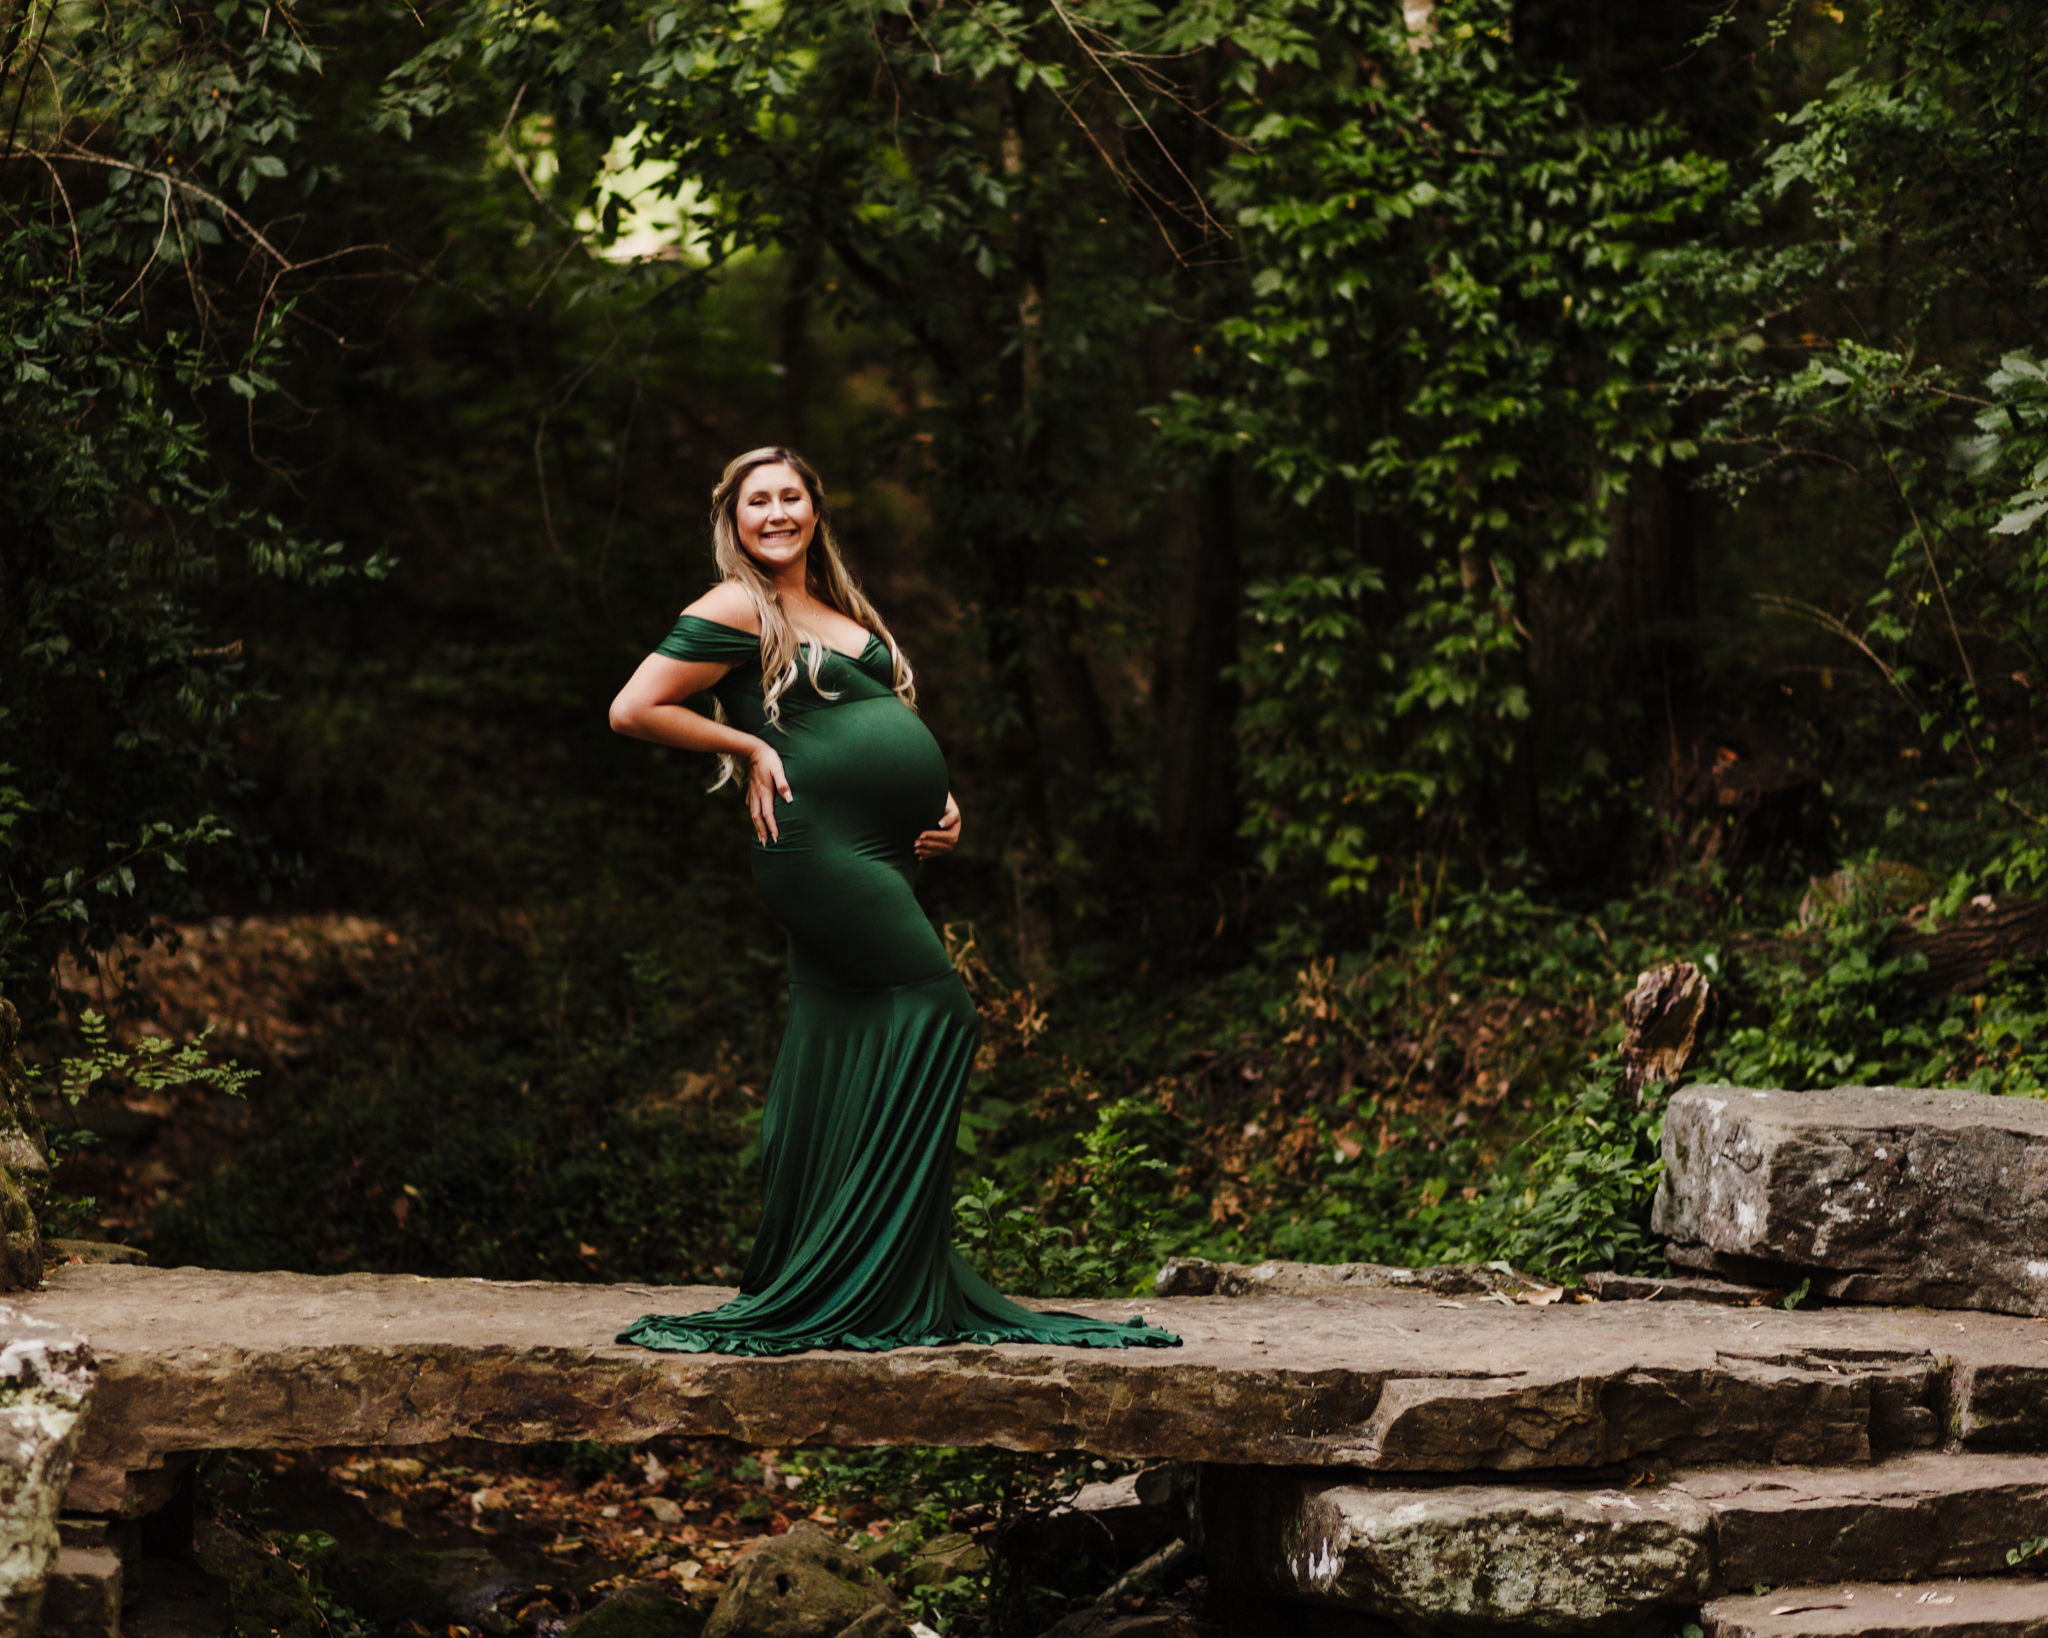 maternity photography session at Crystal Bridges along the art trail on rock ledge. Mom is holding belly and smiling at camera surrounded by foliage